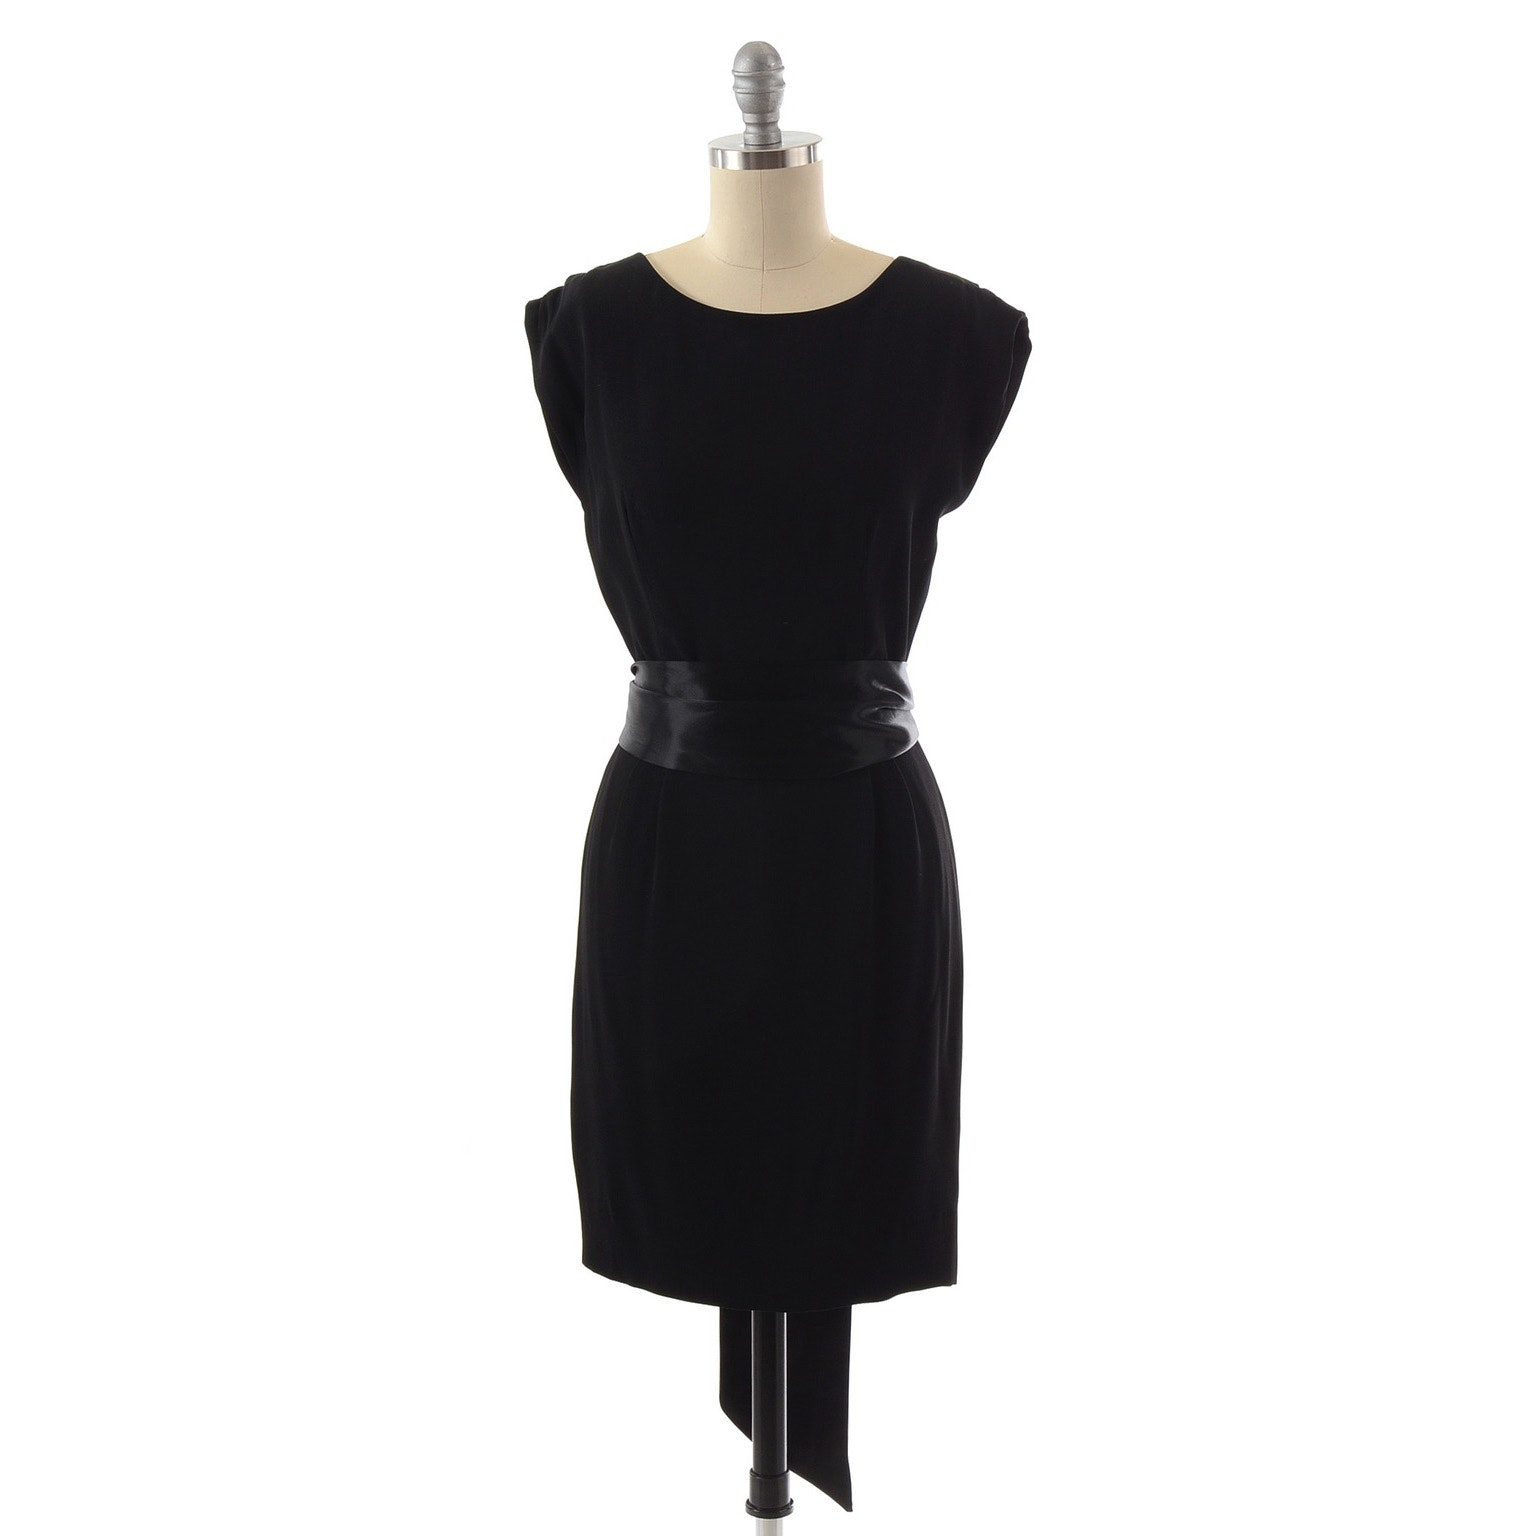 Ralph Lauren Black Sleeveless Cocktail Dress with Black Satin Tie Belt